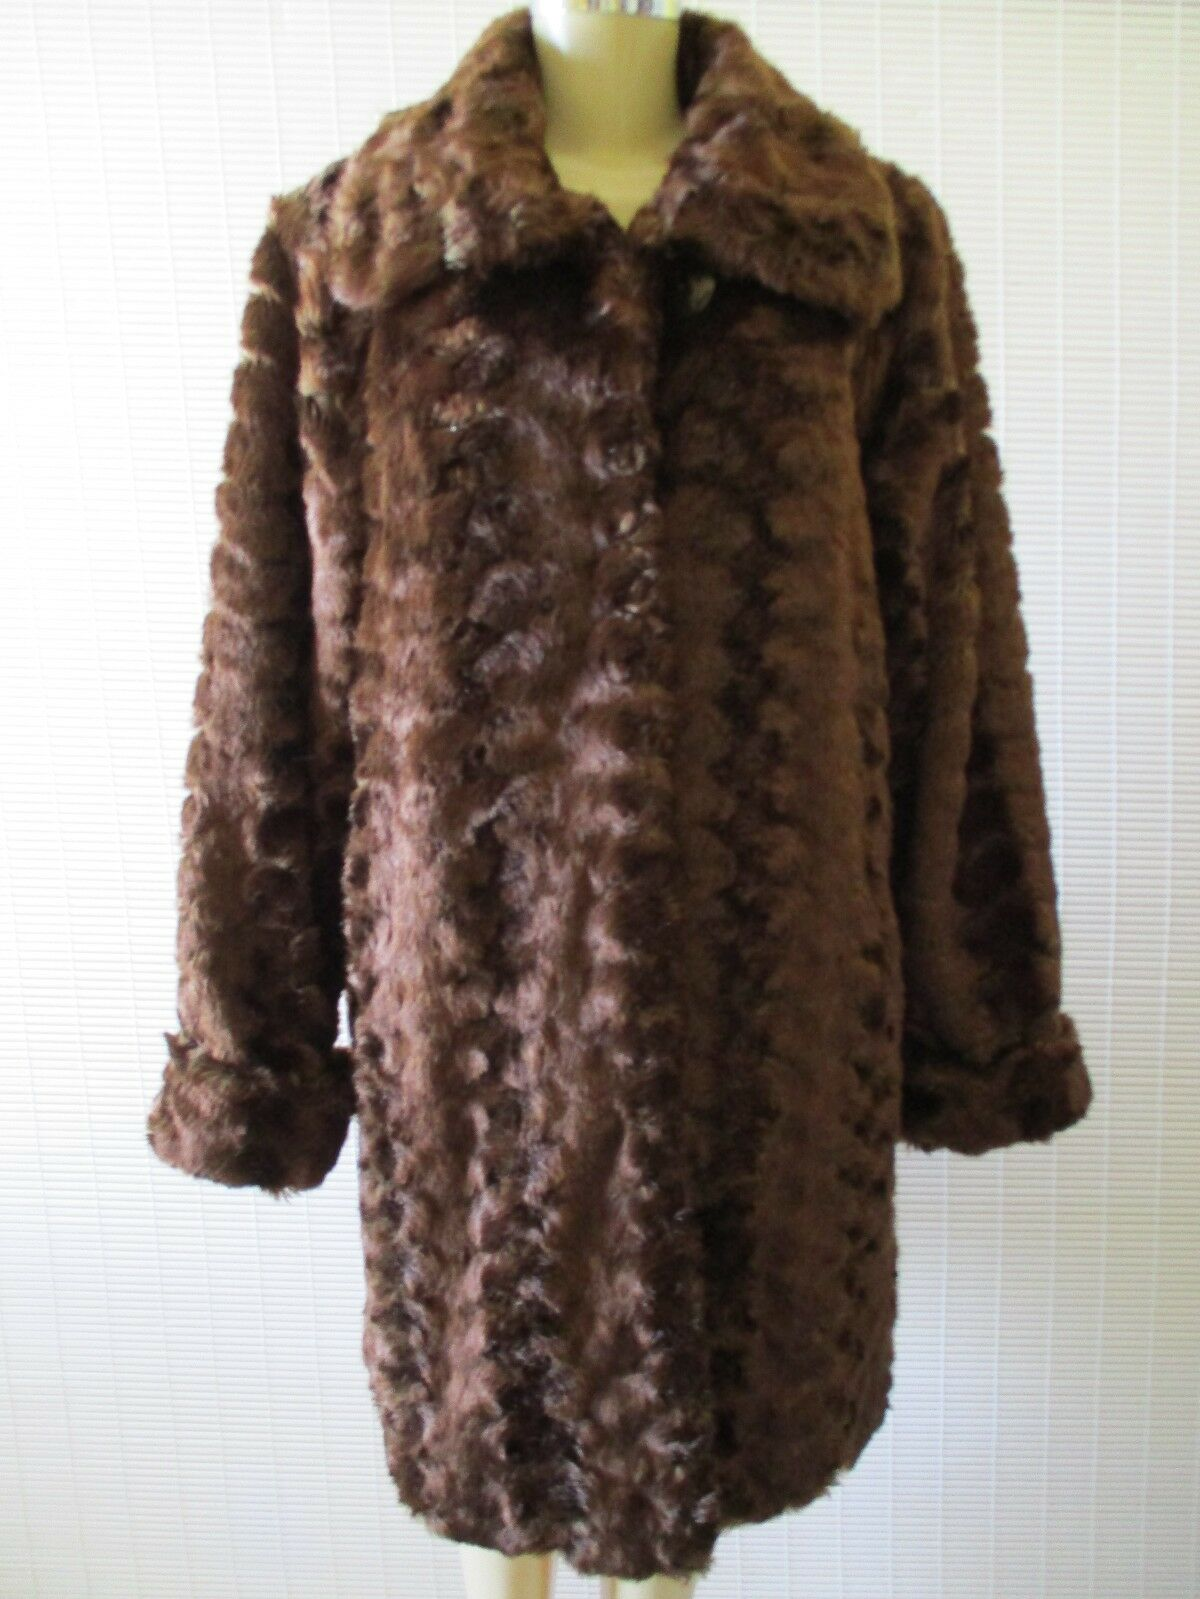 249 249 249 DENNIS BASSO BROWN LONG SLEEVE FAUX FUR COAT WITH SCARF SIZE S - NWT b0a766